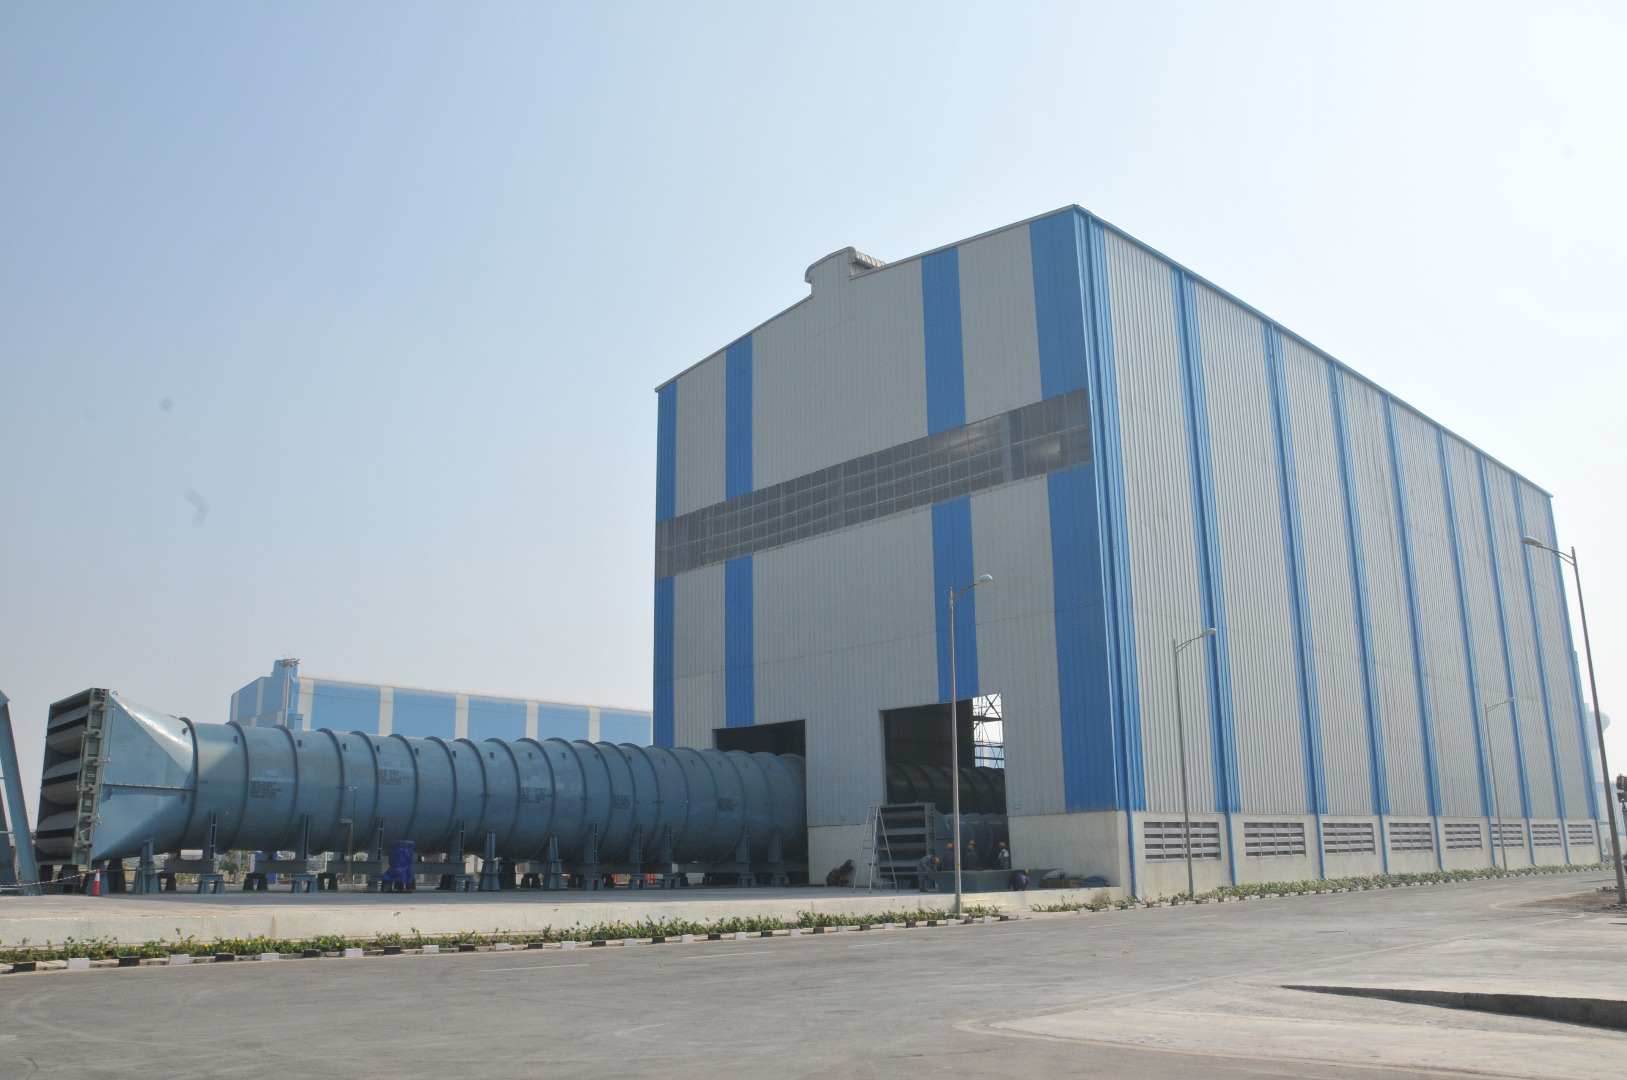 Fan Assembly and Testing Facility